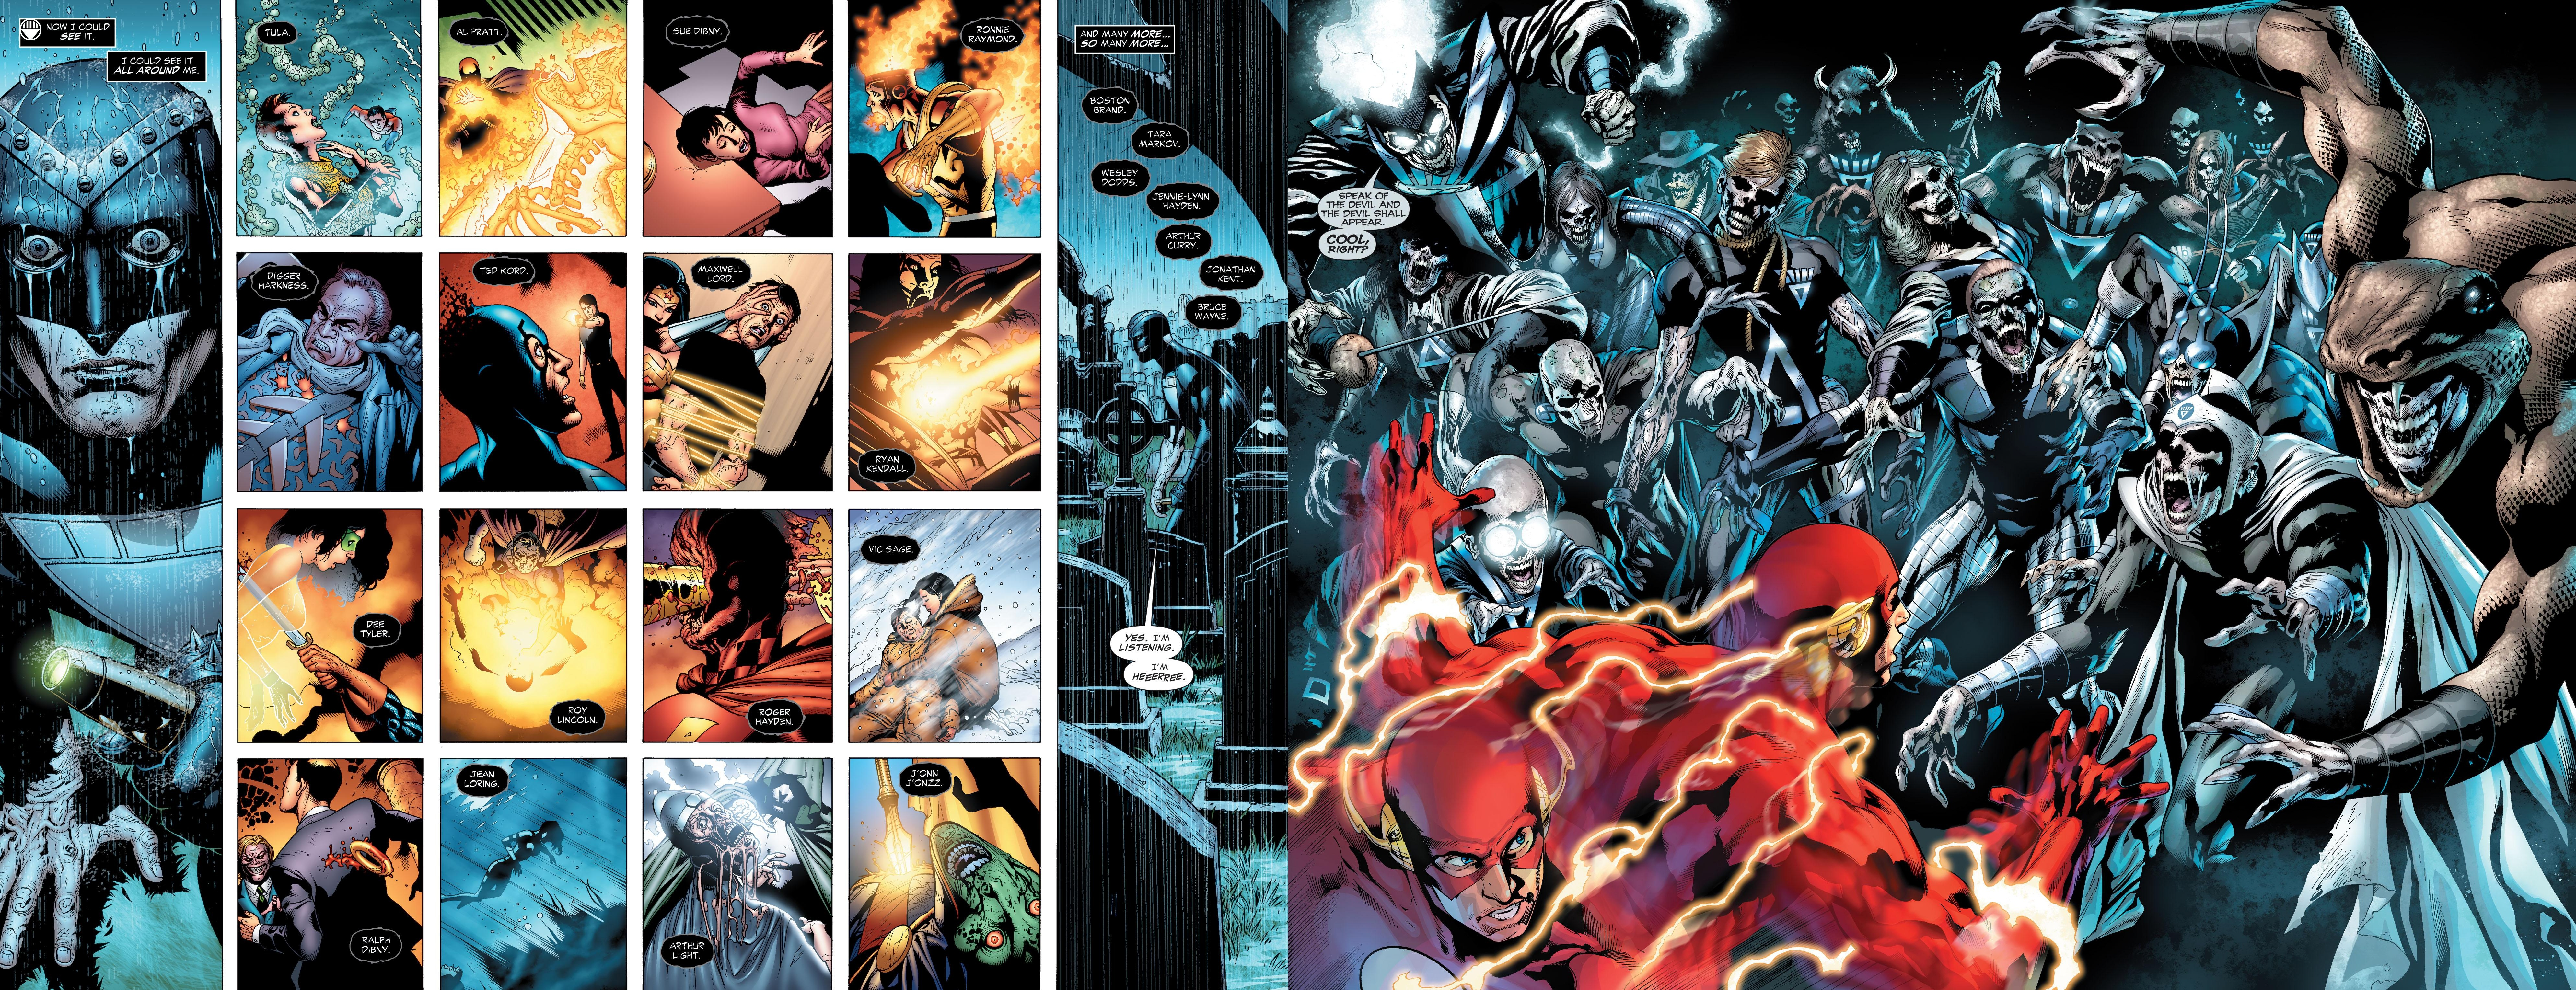 Blackest Night 10th Anniversary Omnibus review